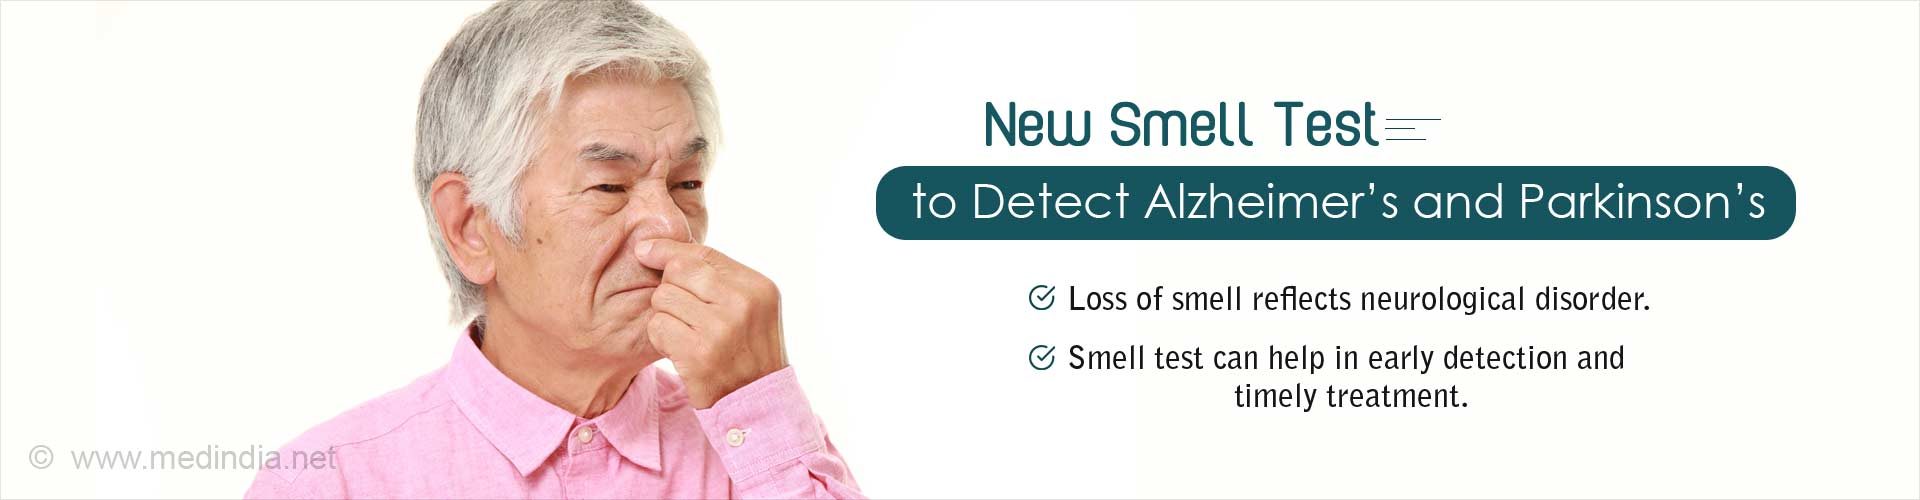 New Smell Test for Detection of Alzheimer''s and Parkinson''s